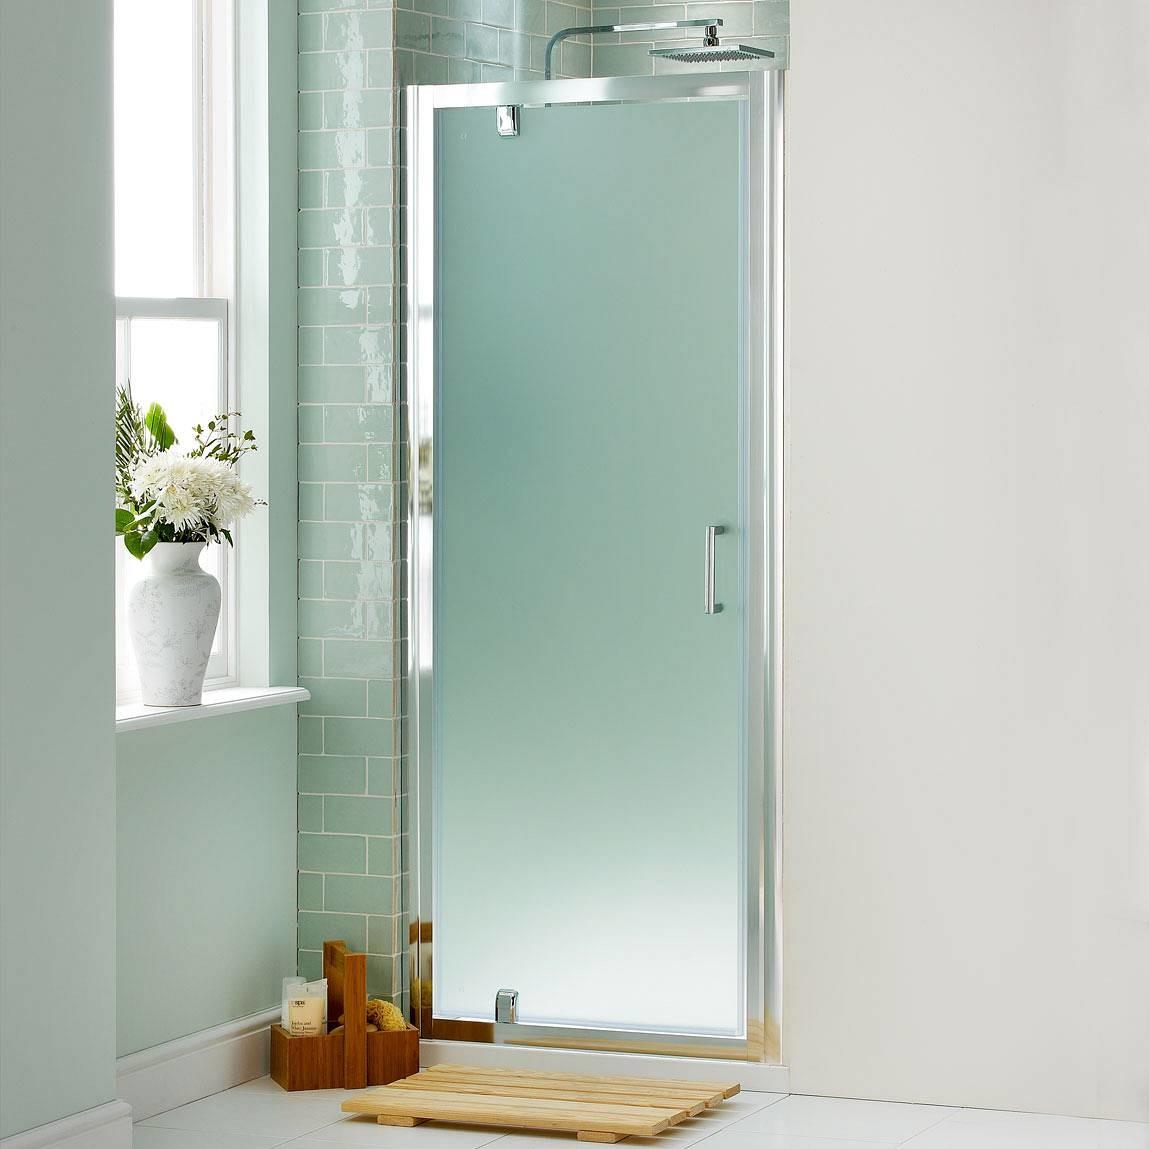 Modern Minimalist Bathroom Design Frosted Glass